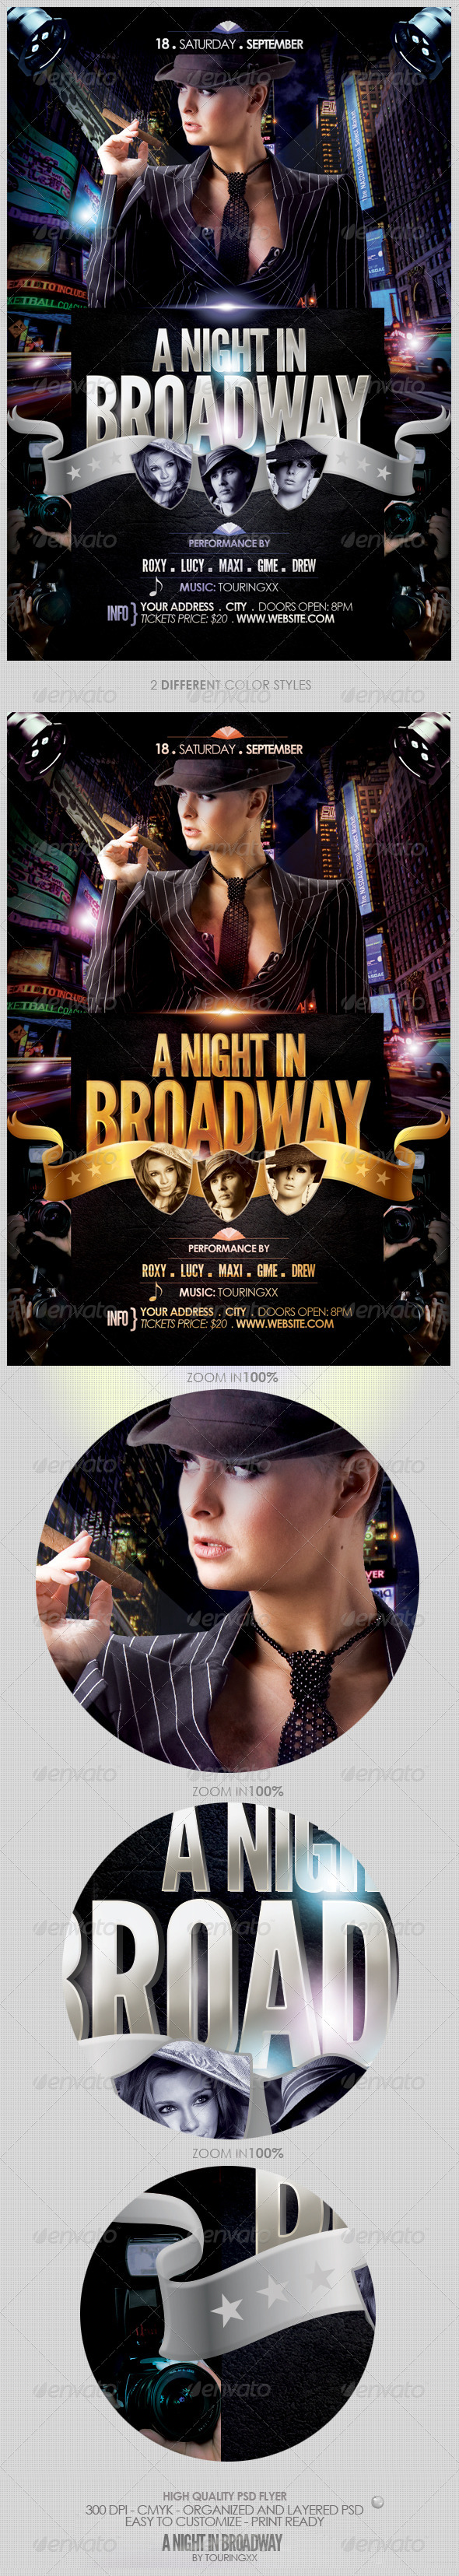 A Night In Broadway Flyer Template - Clubs & Parties Events